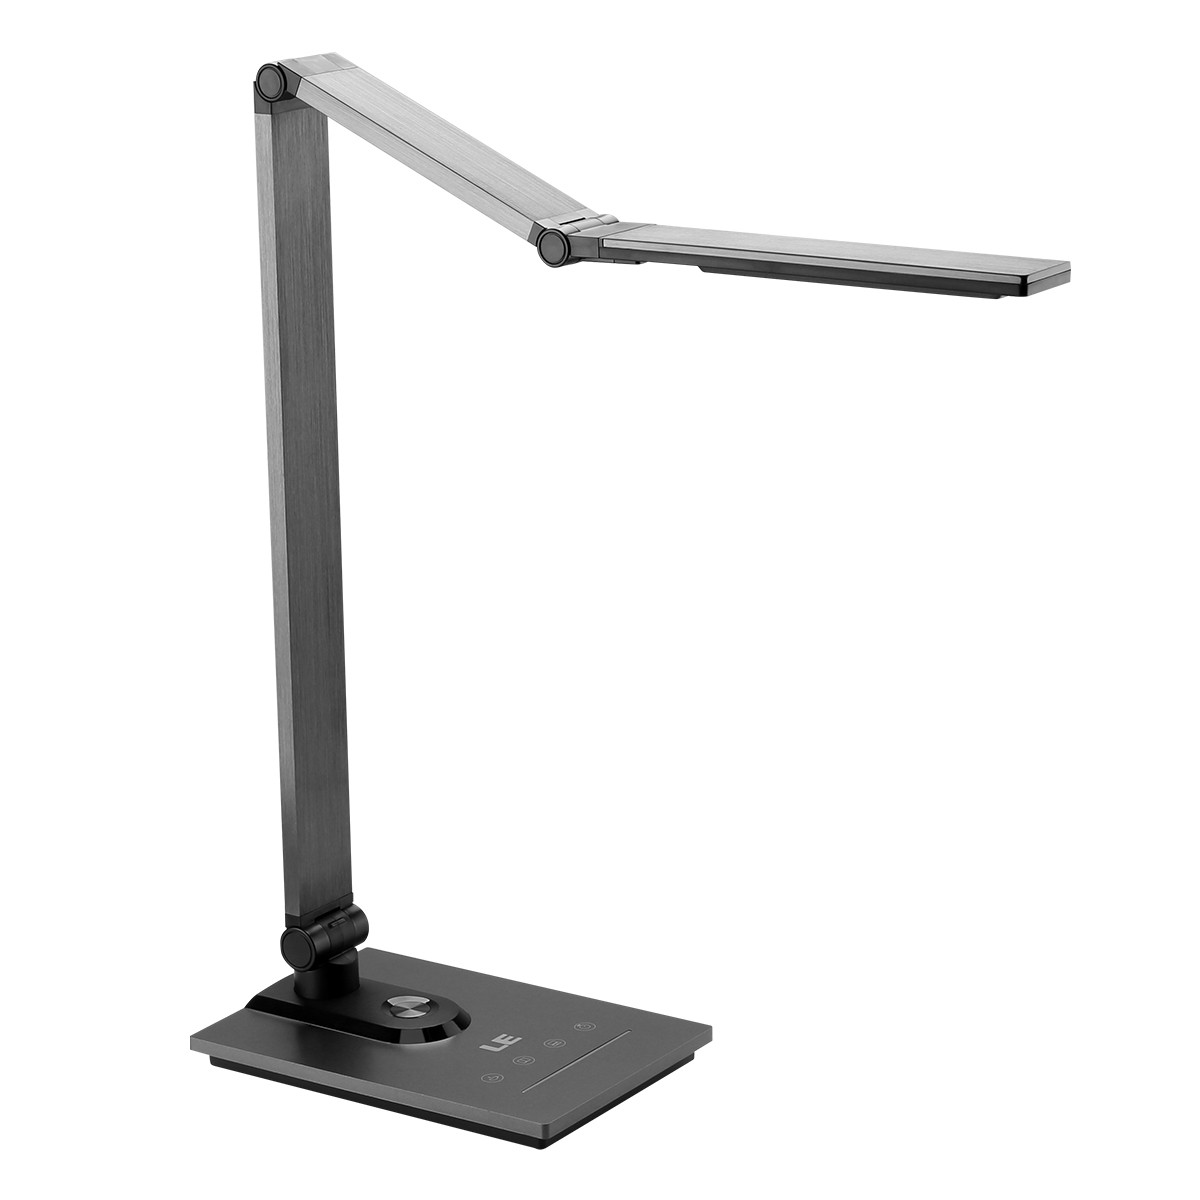 Best ideas about Desk Lamp Led . Save or Pin LED Desk Lamp Dimmable 3 level Color Temperature Mode USB Now.